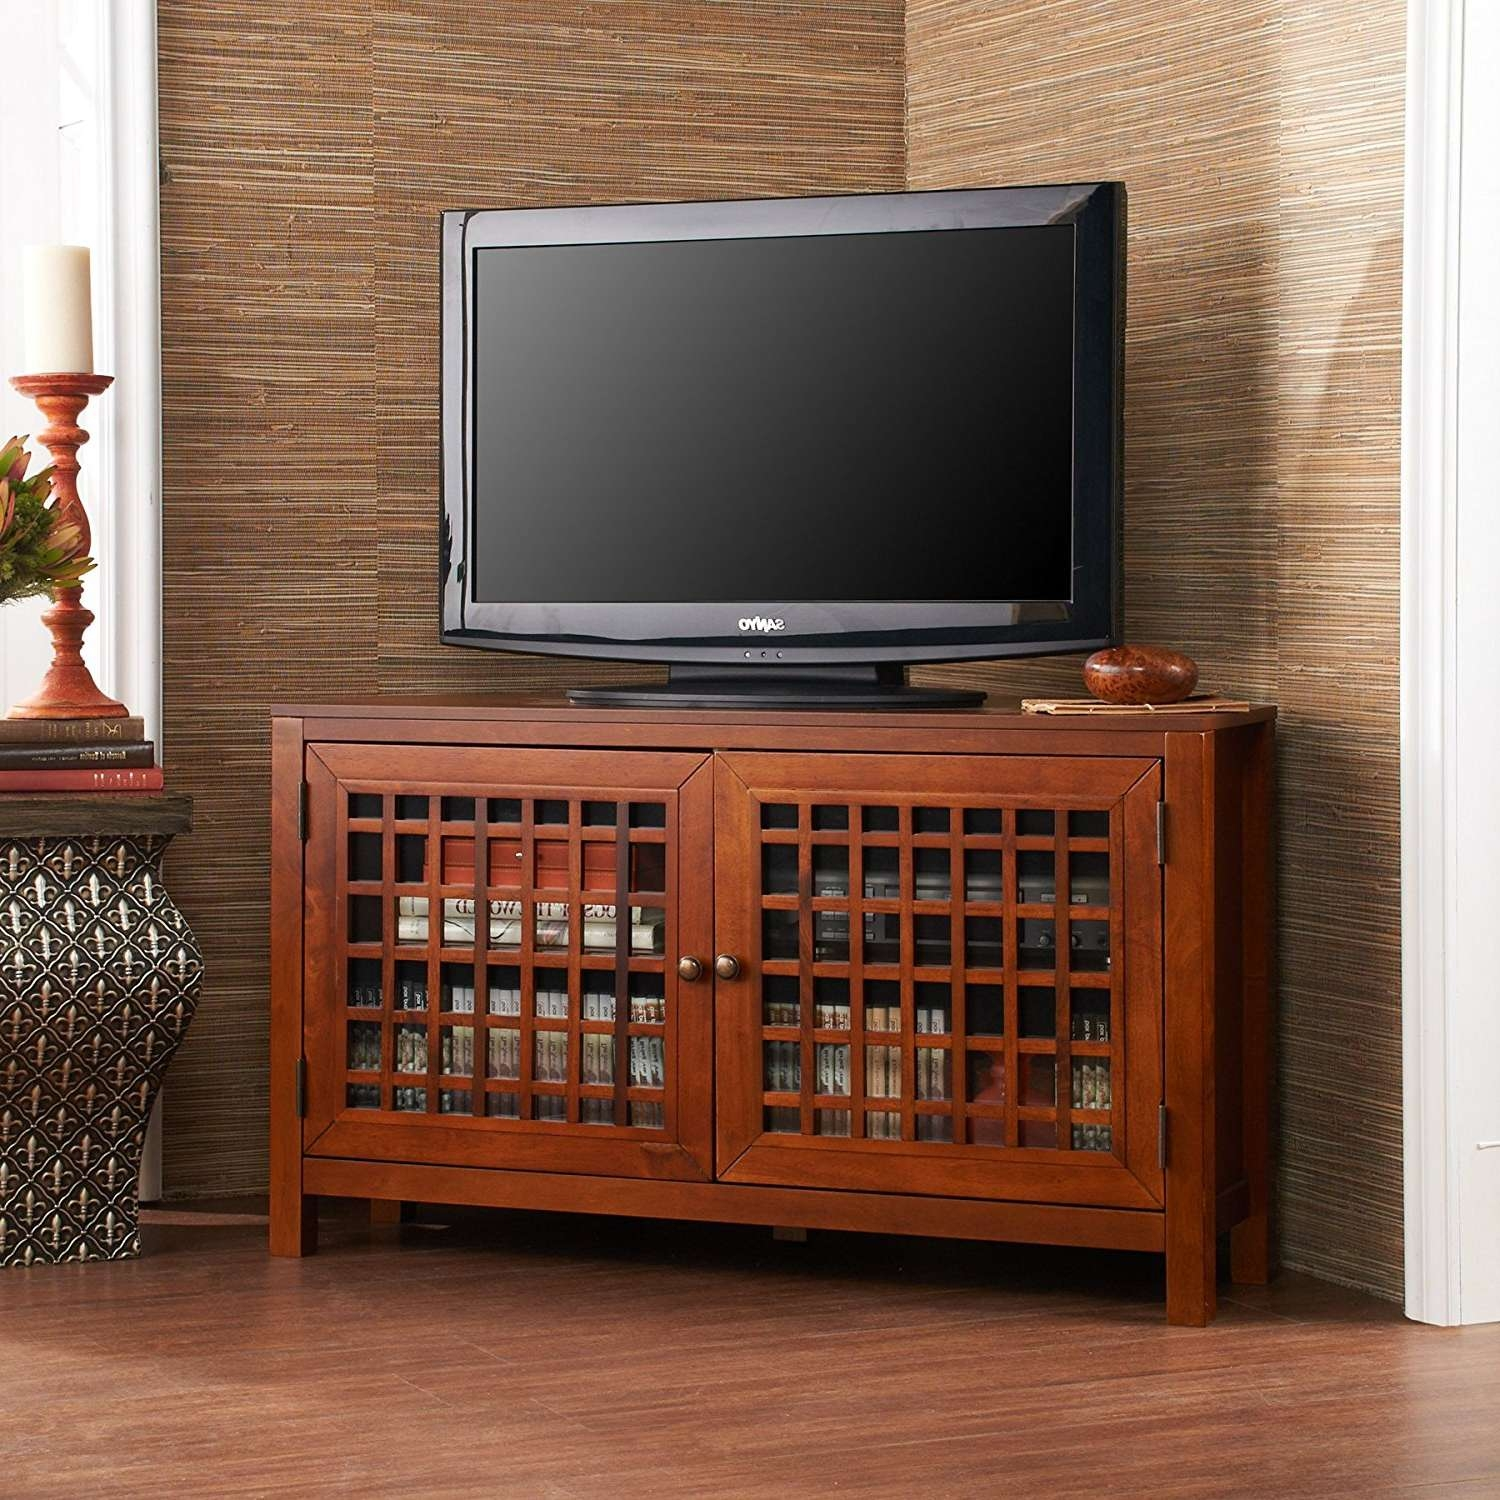 Amazoncom Narita Corner Media Stand Walnut Kitchen Dining Storage With Regard To Corner Tv Cabinets For Flat Screens With Doors (View 17 of 20)